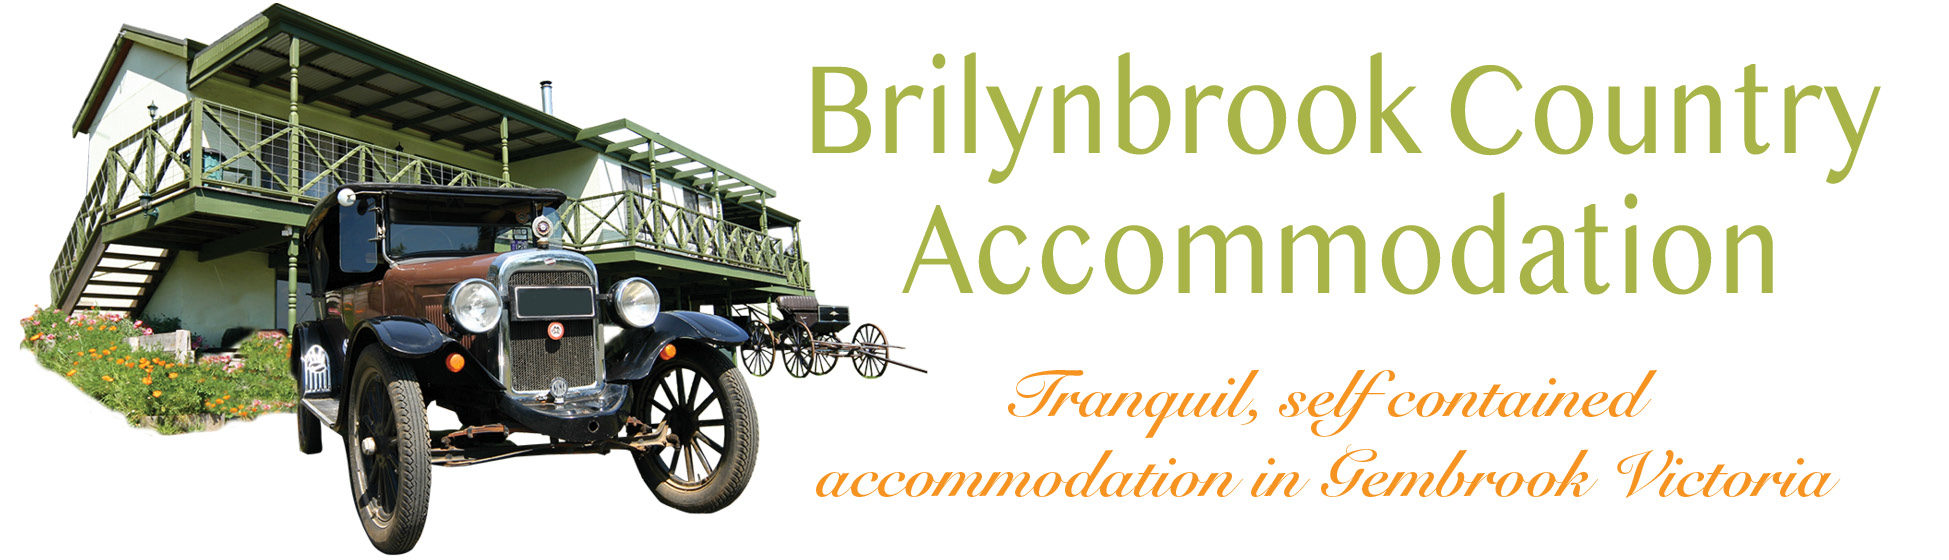 Brilynbrook Accommodation